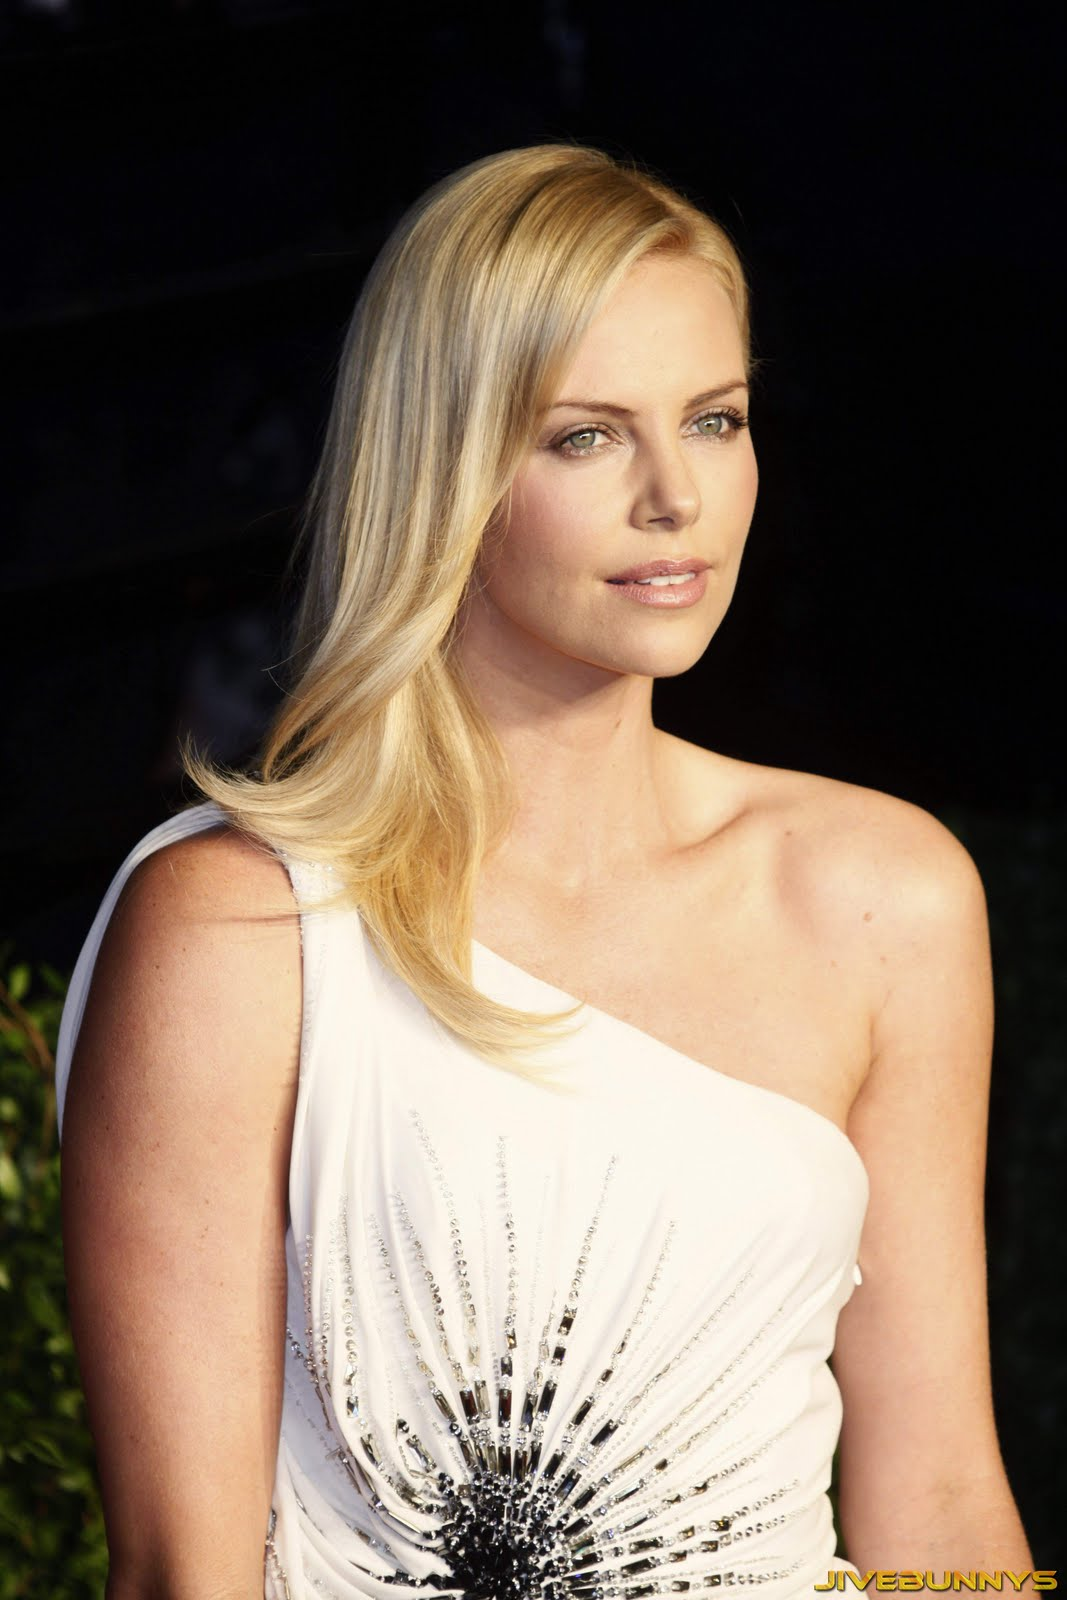 Charlize Theron In Versace For British Vogue: Charlize Theron Special Pictures (29)